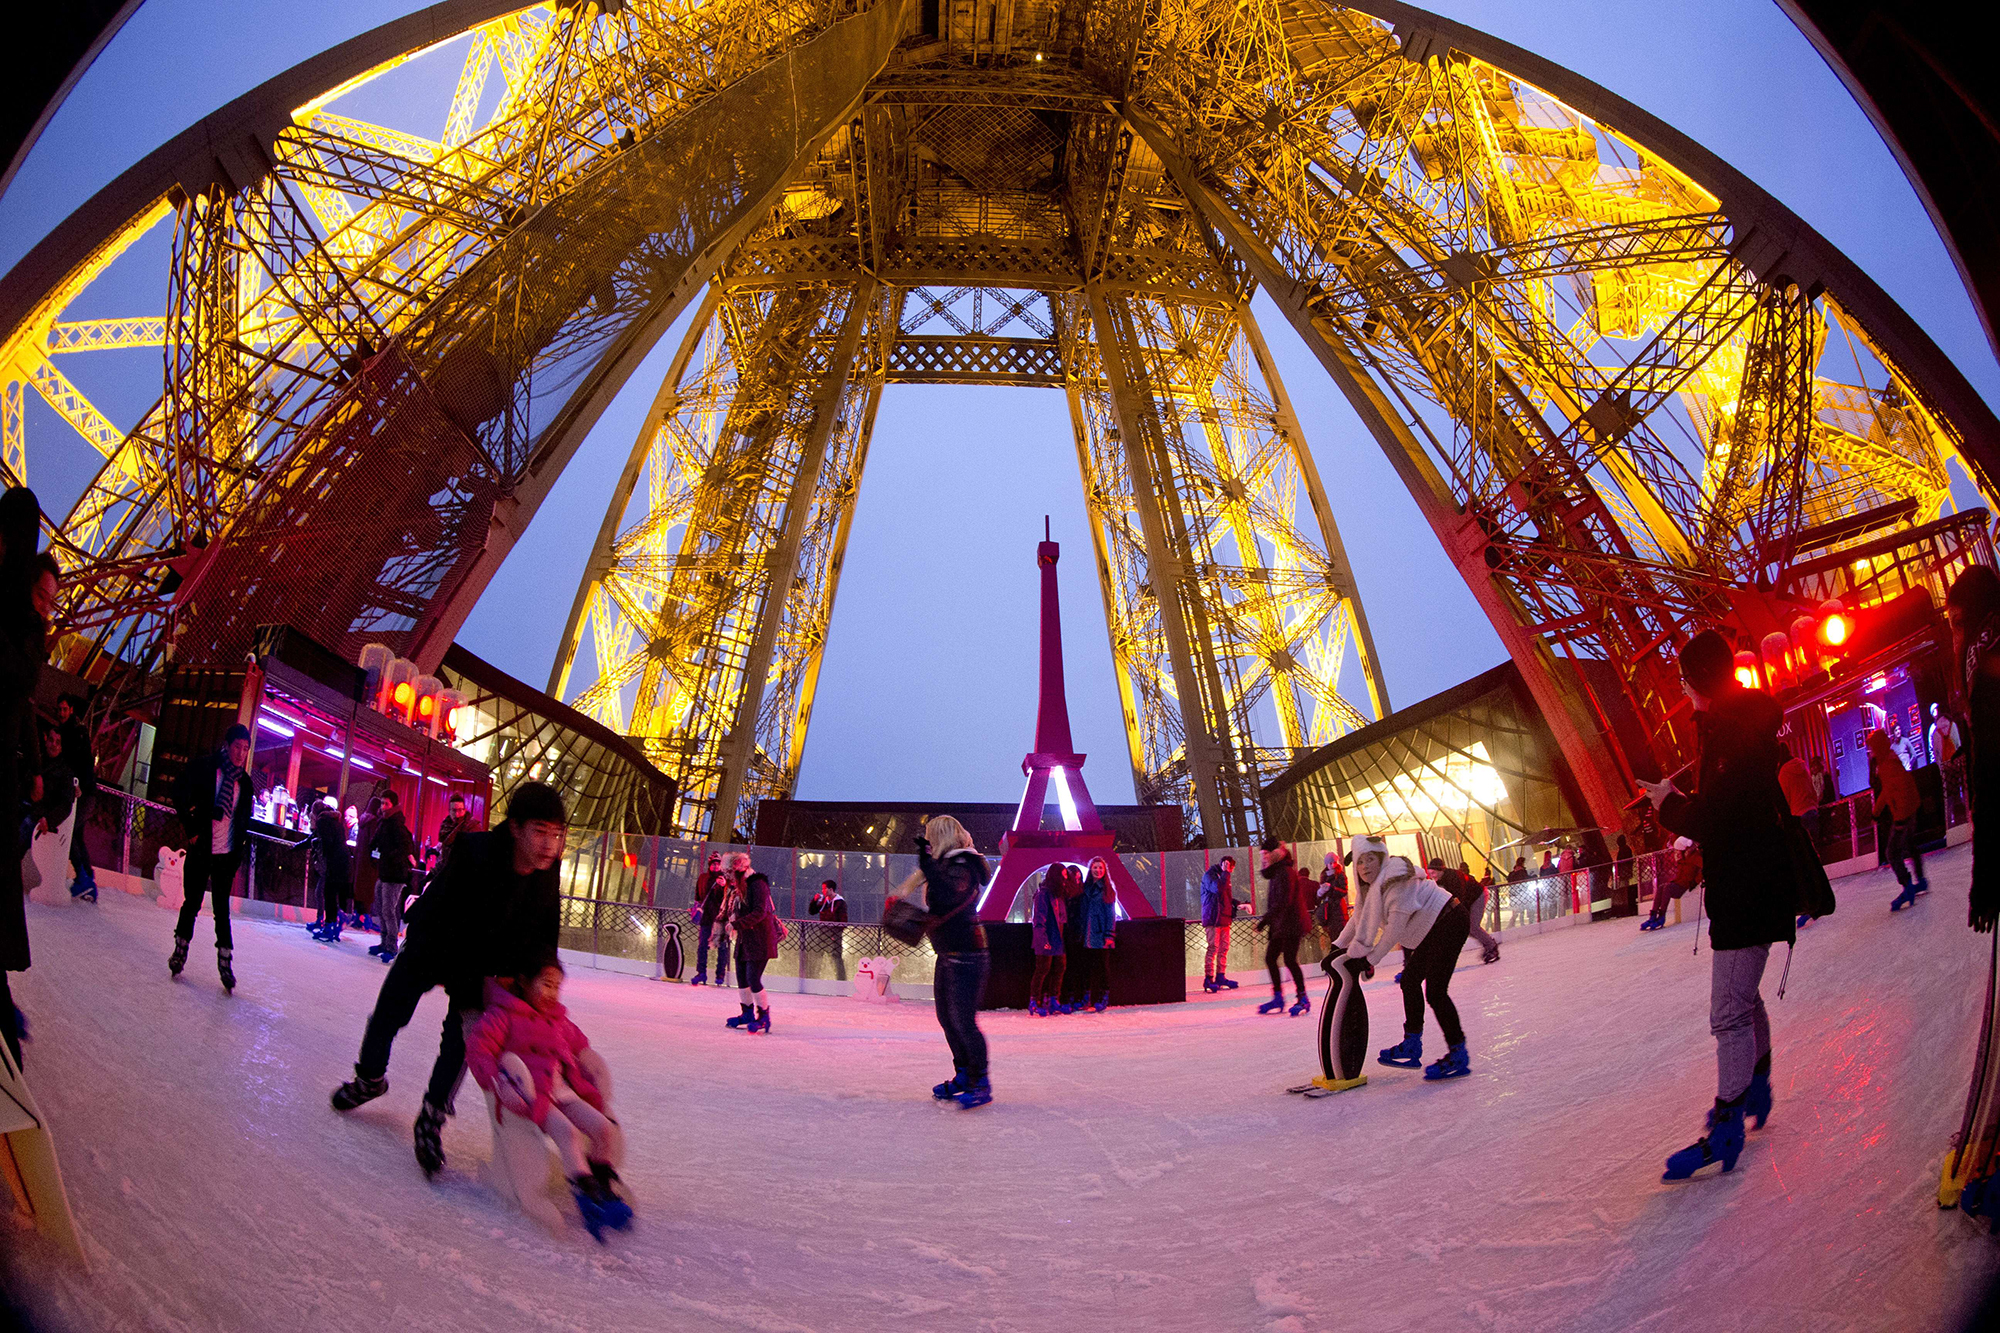 FRANCE-LIFESTYLE-SKATING-EIFFEL-TOWER